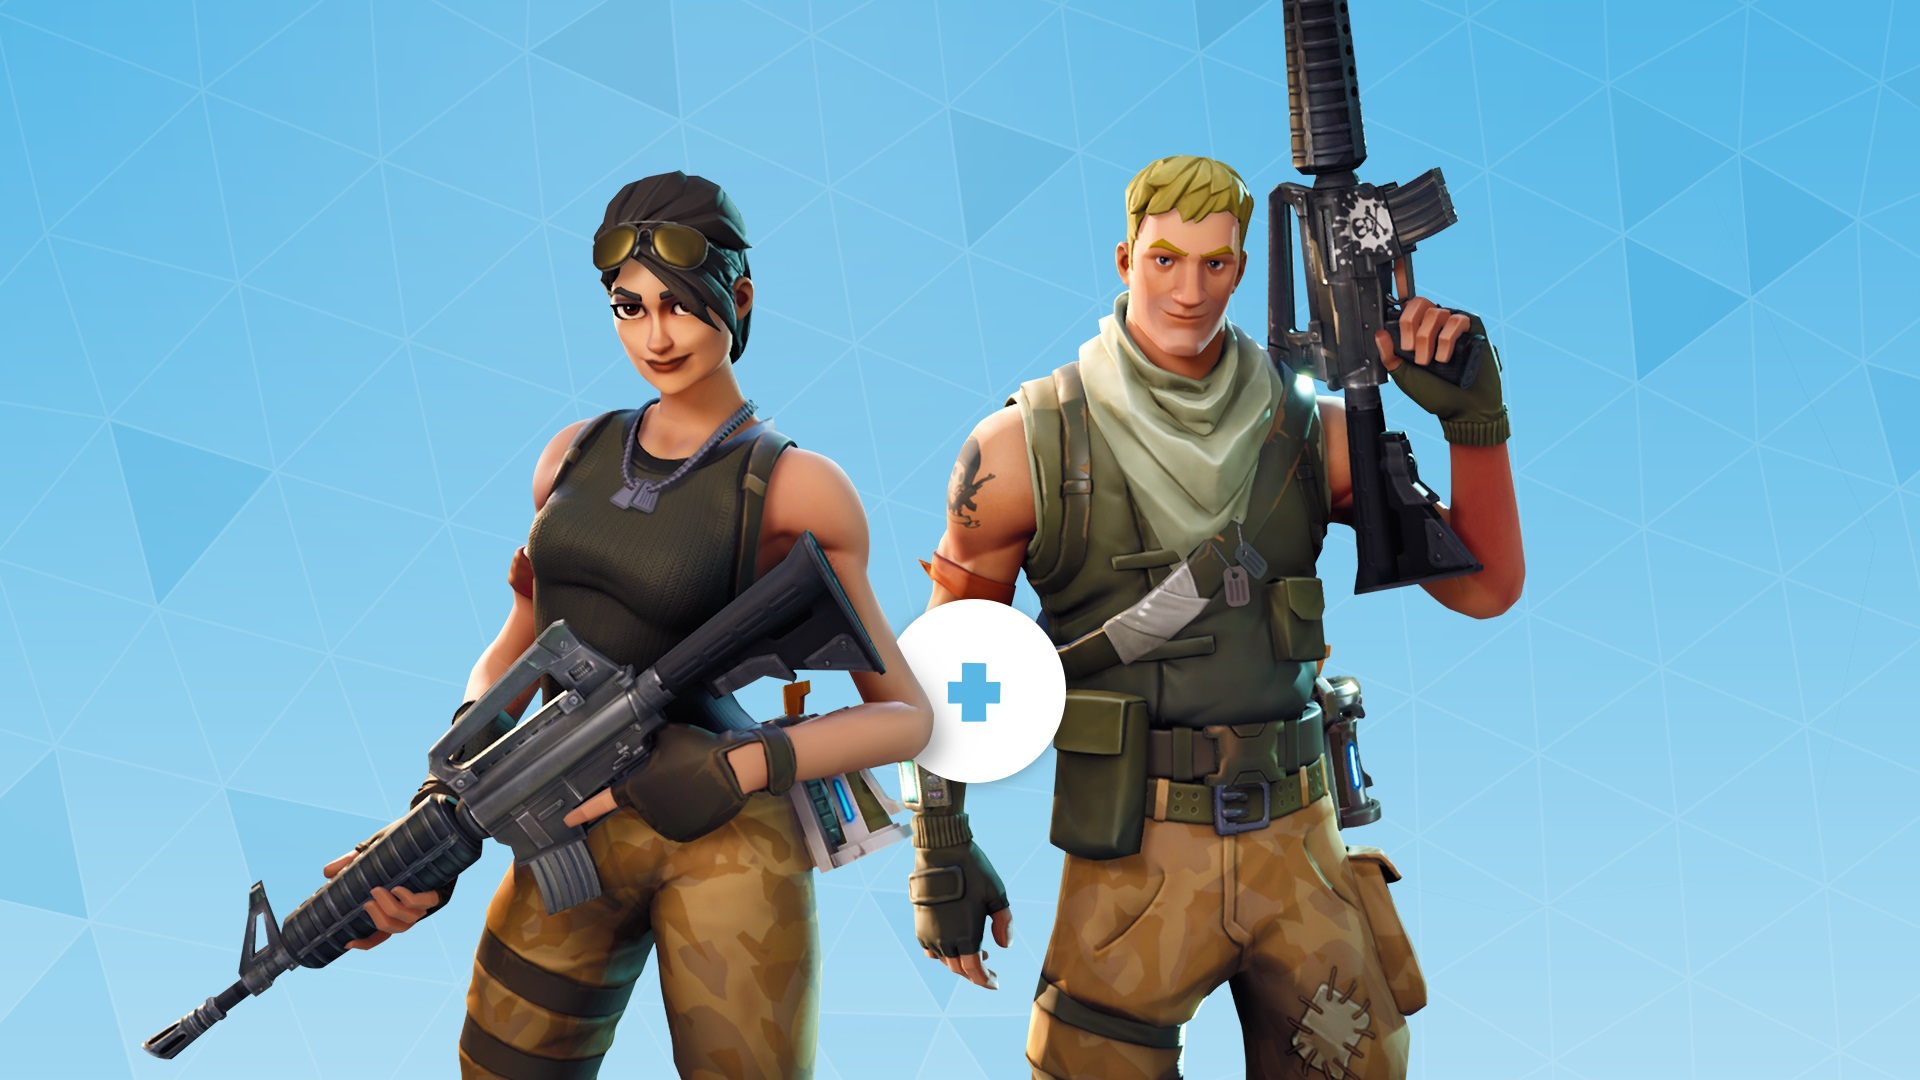 Random Players Fortnite With Pc And Xbox Fortnite Battle Royale How To Play Squads And Duos Allgamers